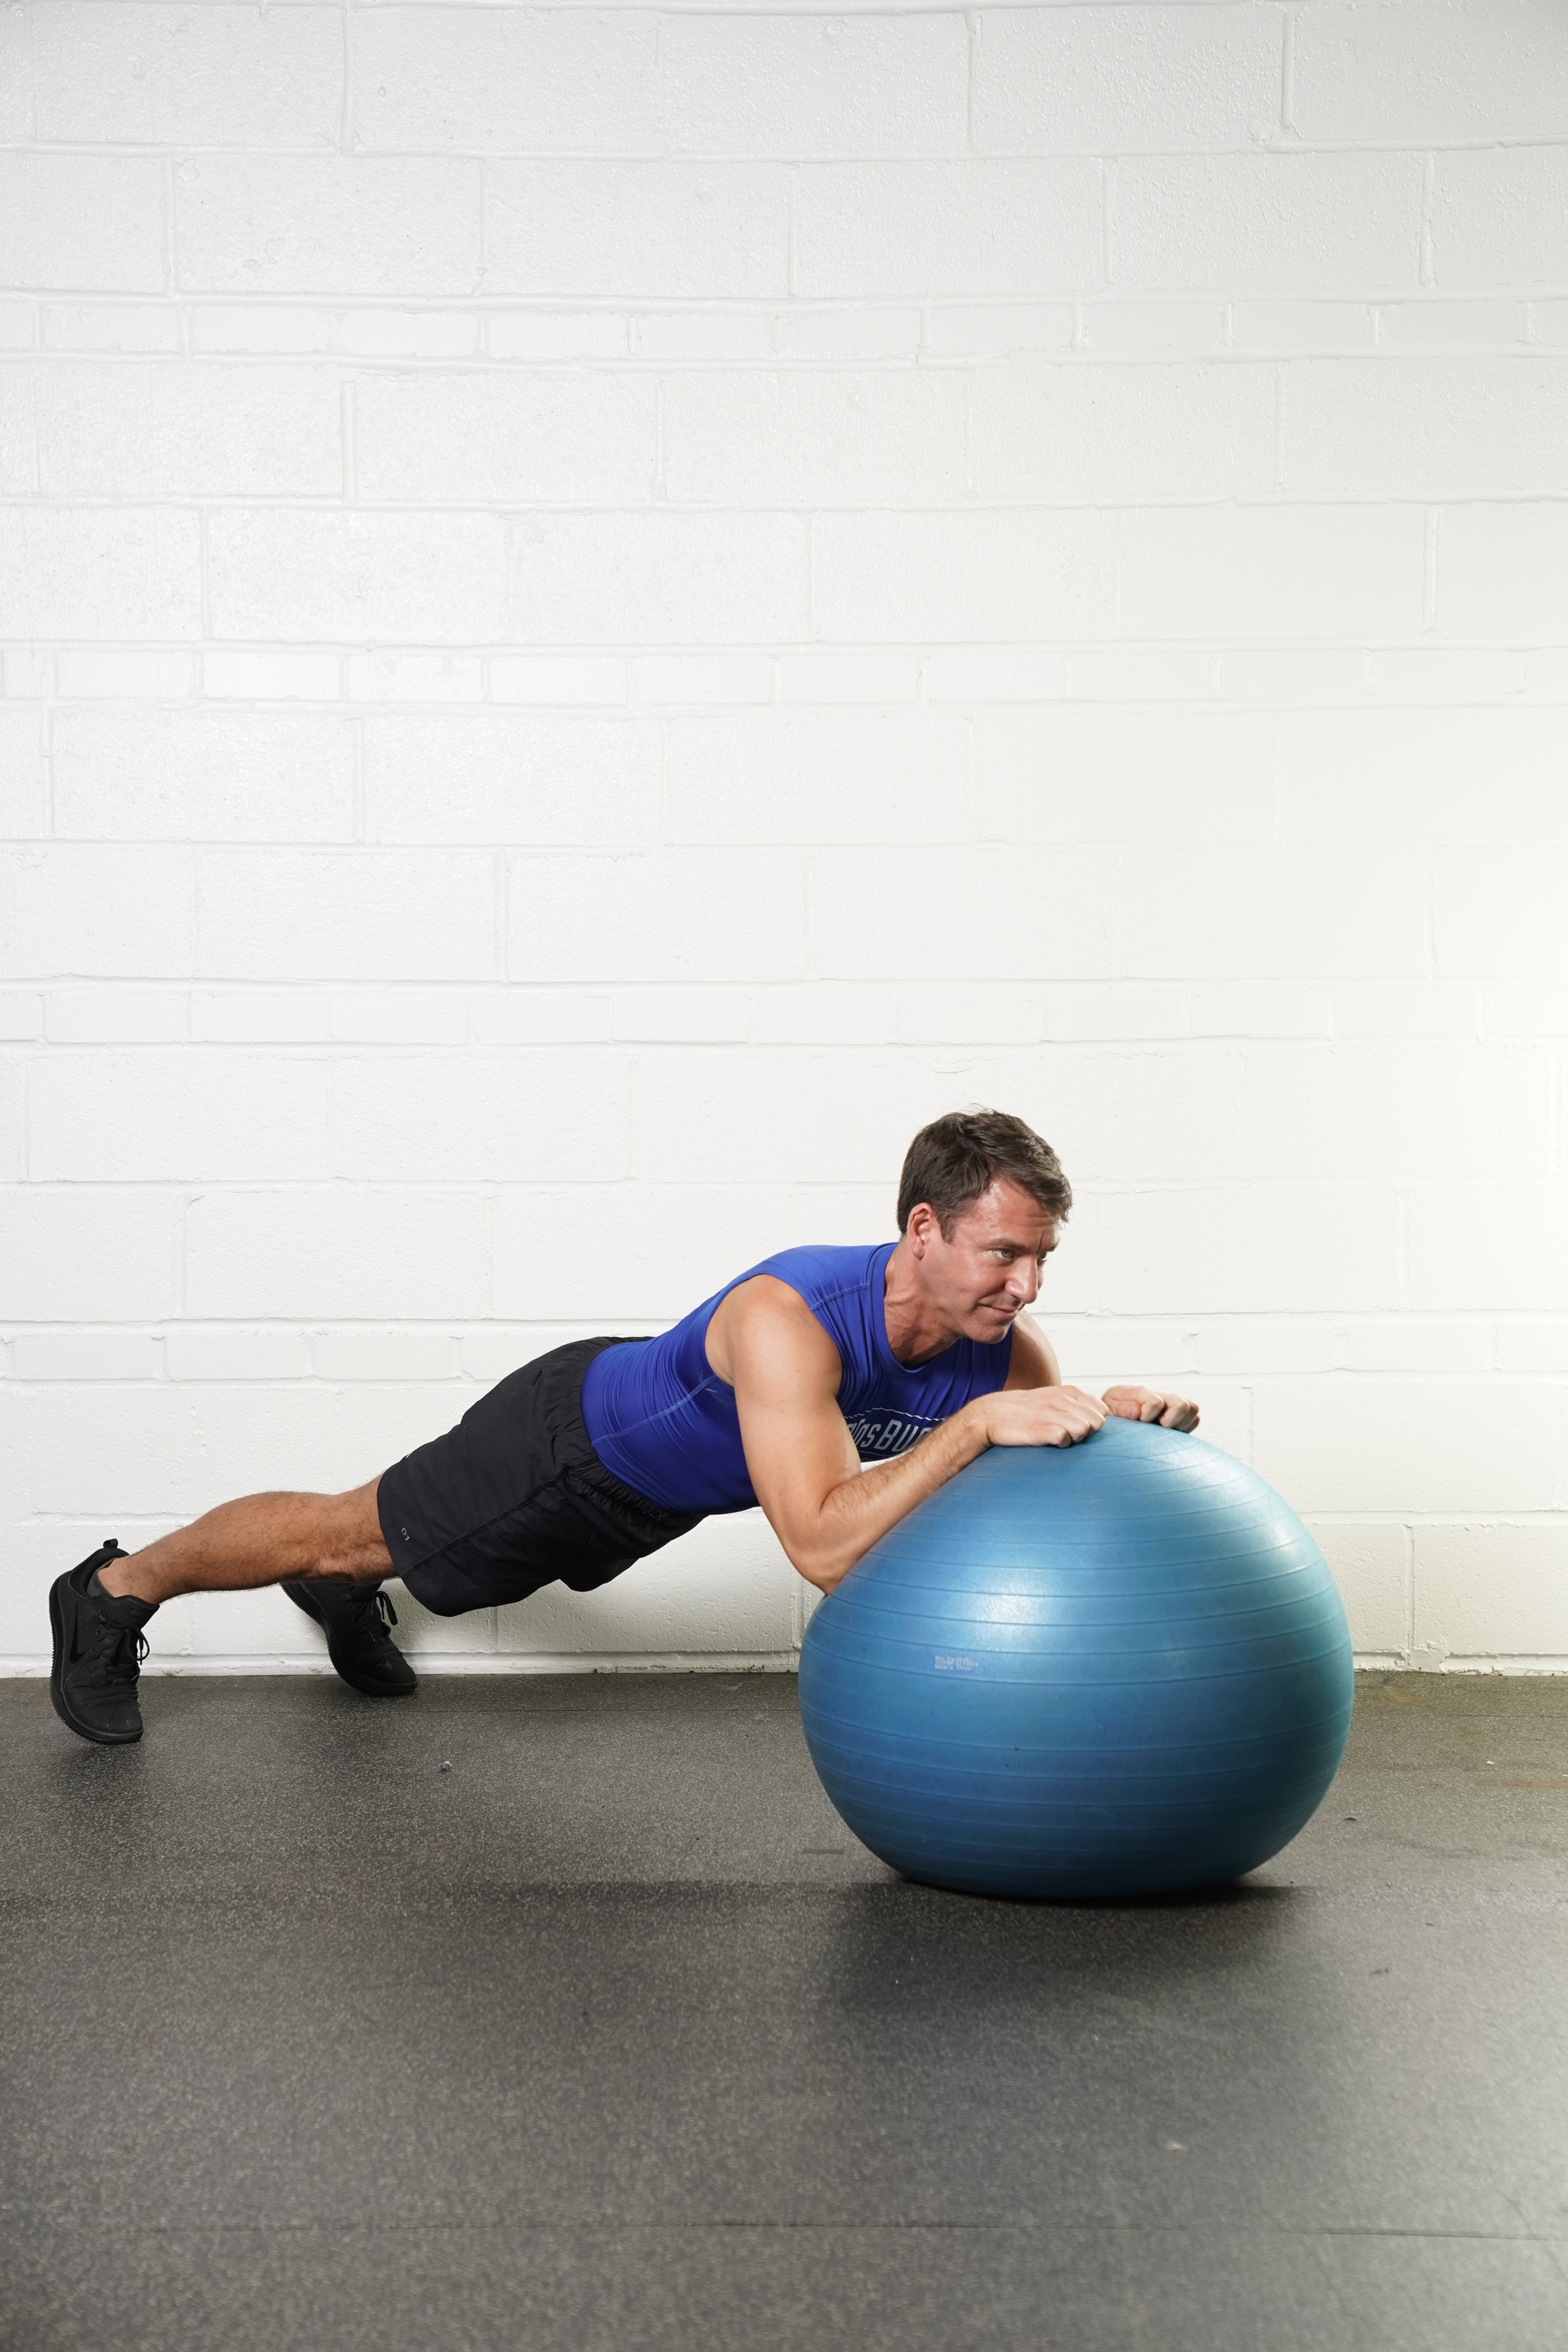 Stability Ball Plank Hold with Fist Pump - DURATION: 30 secondsNotes:- The fist pumps can be really small- As your forearms move, keep the rest of your body completely stable: hips squared off with your shoulders, feet planted with your weight shifted back toward your heels.